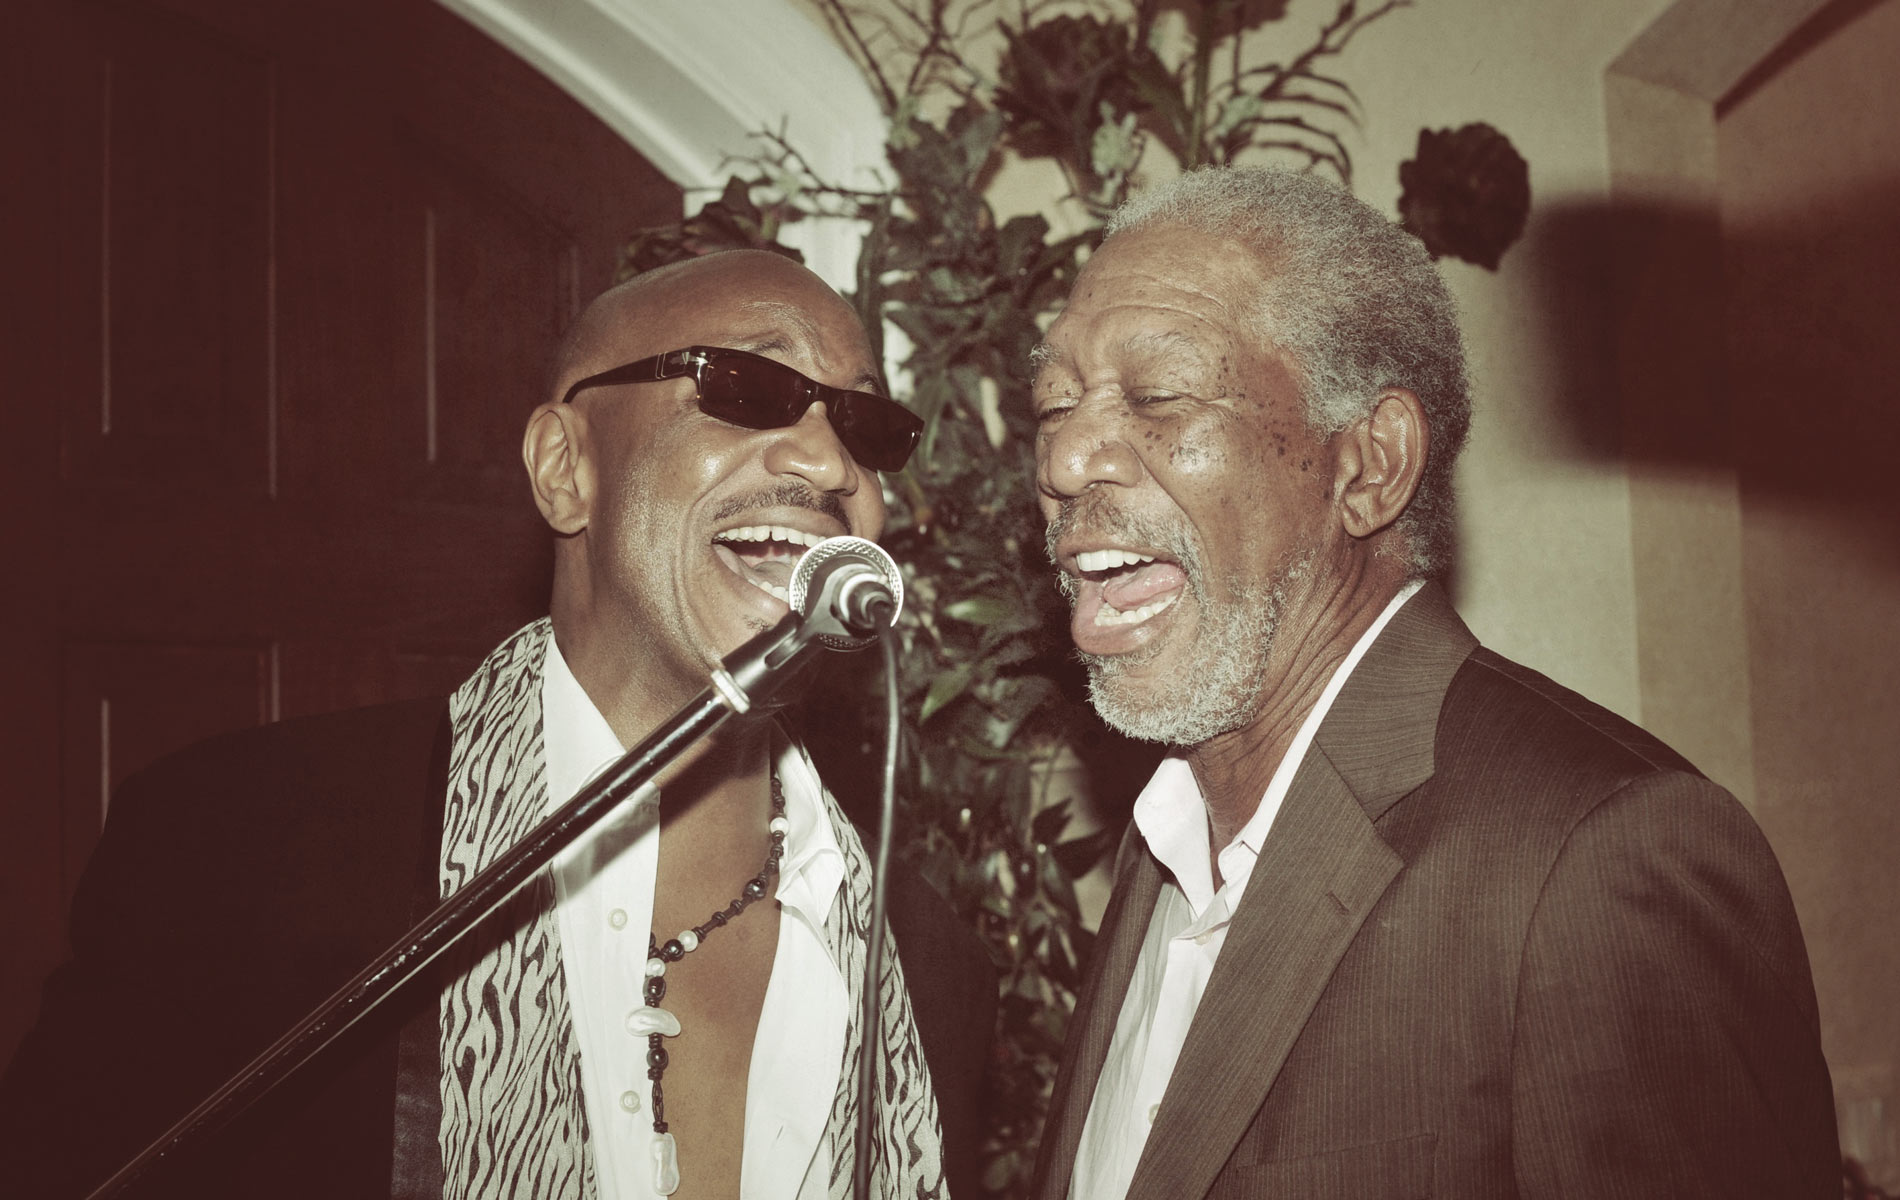 Local celebrity from NBC's The Voice, Geoff McBride, sings with Academy Award– winning Morgan Freeman at the Morgan Freeman dinner, which was auctioned for a significant $80,000 to benefit the Emerald Coast Children's Advocacy Center.